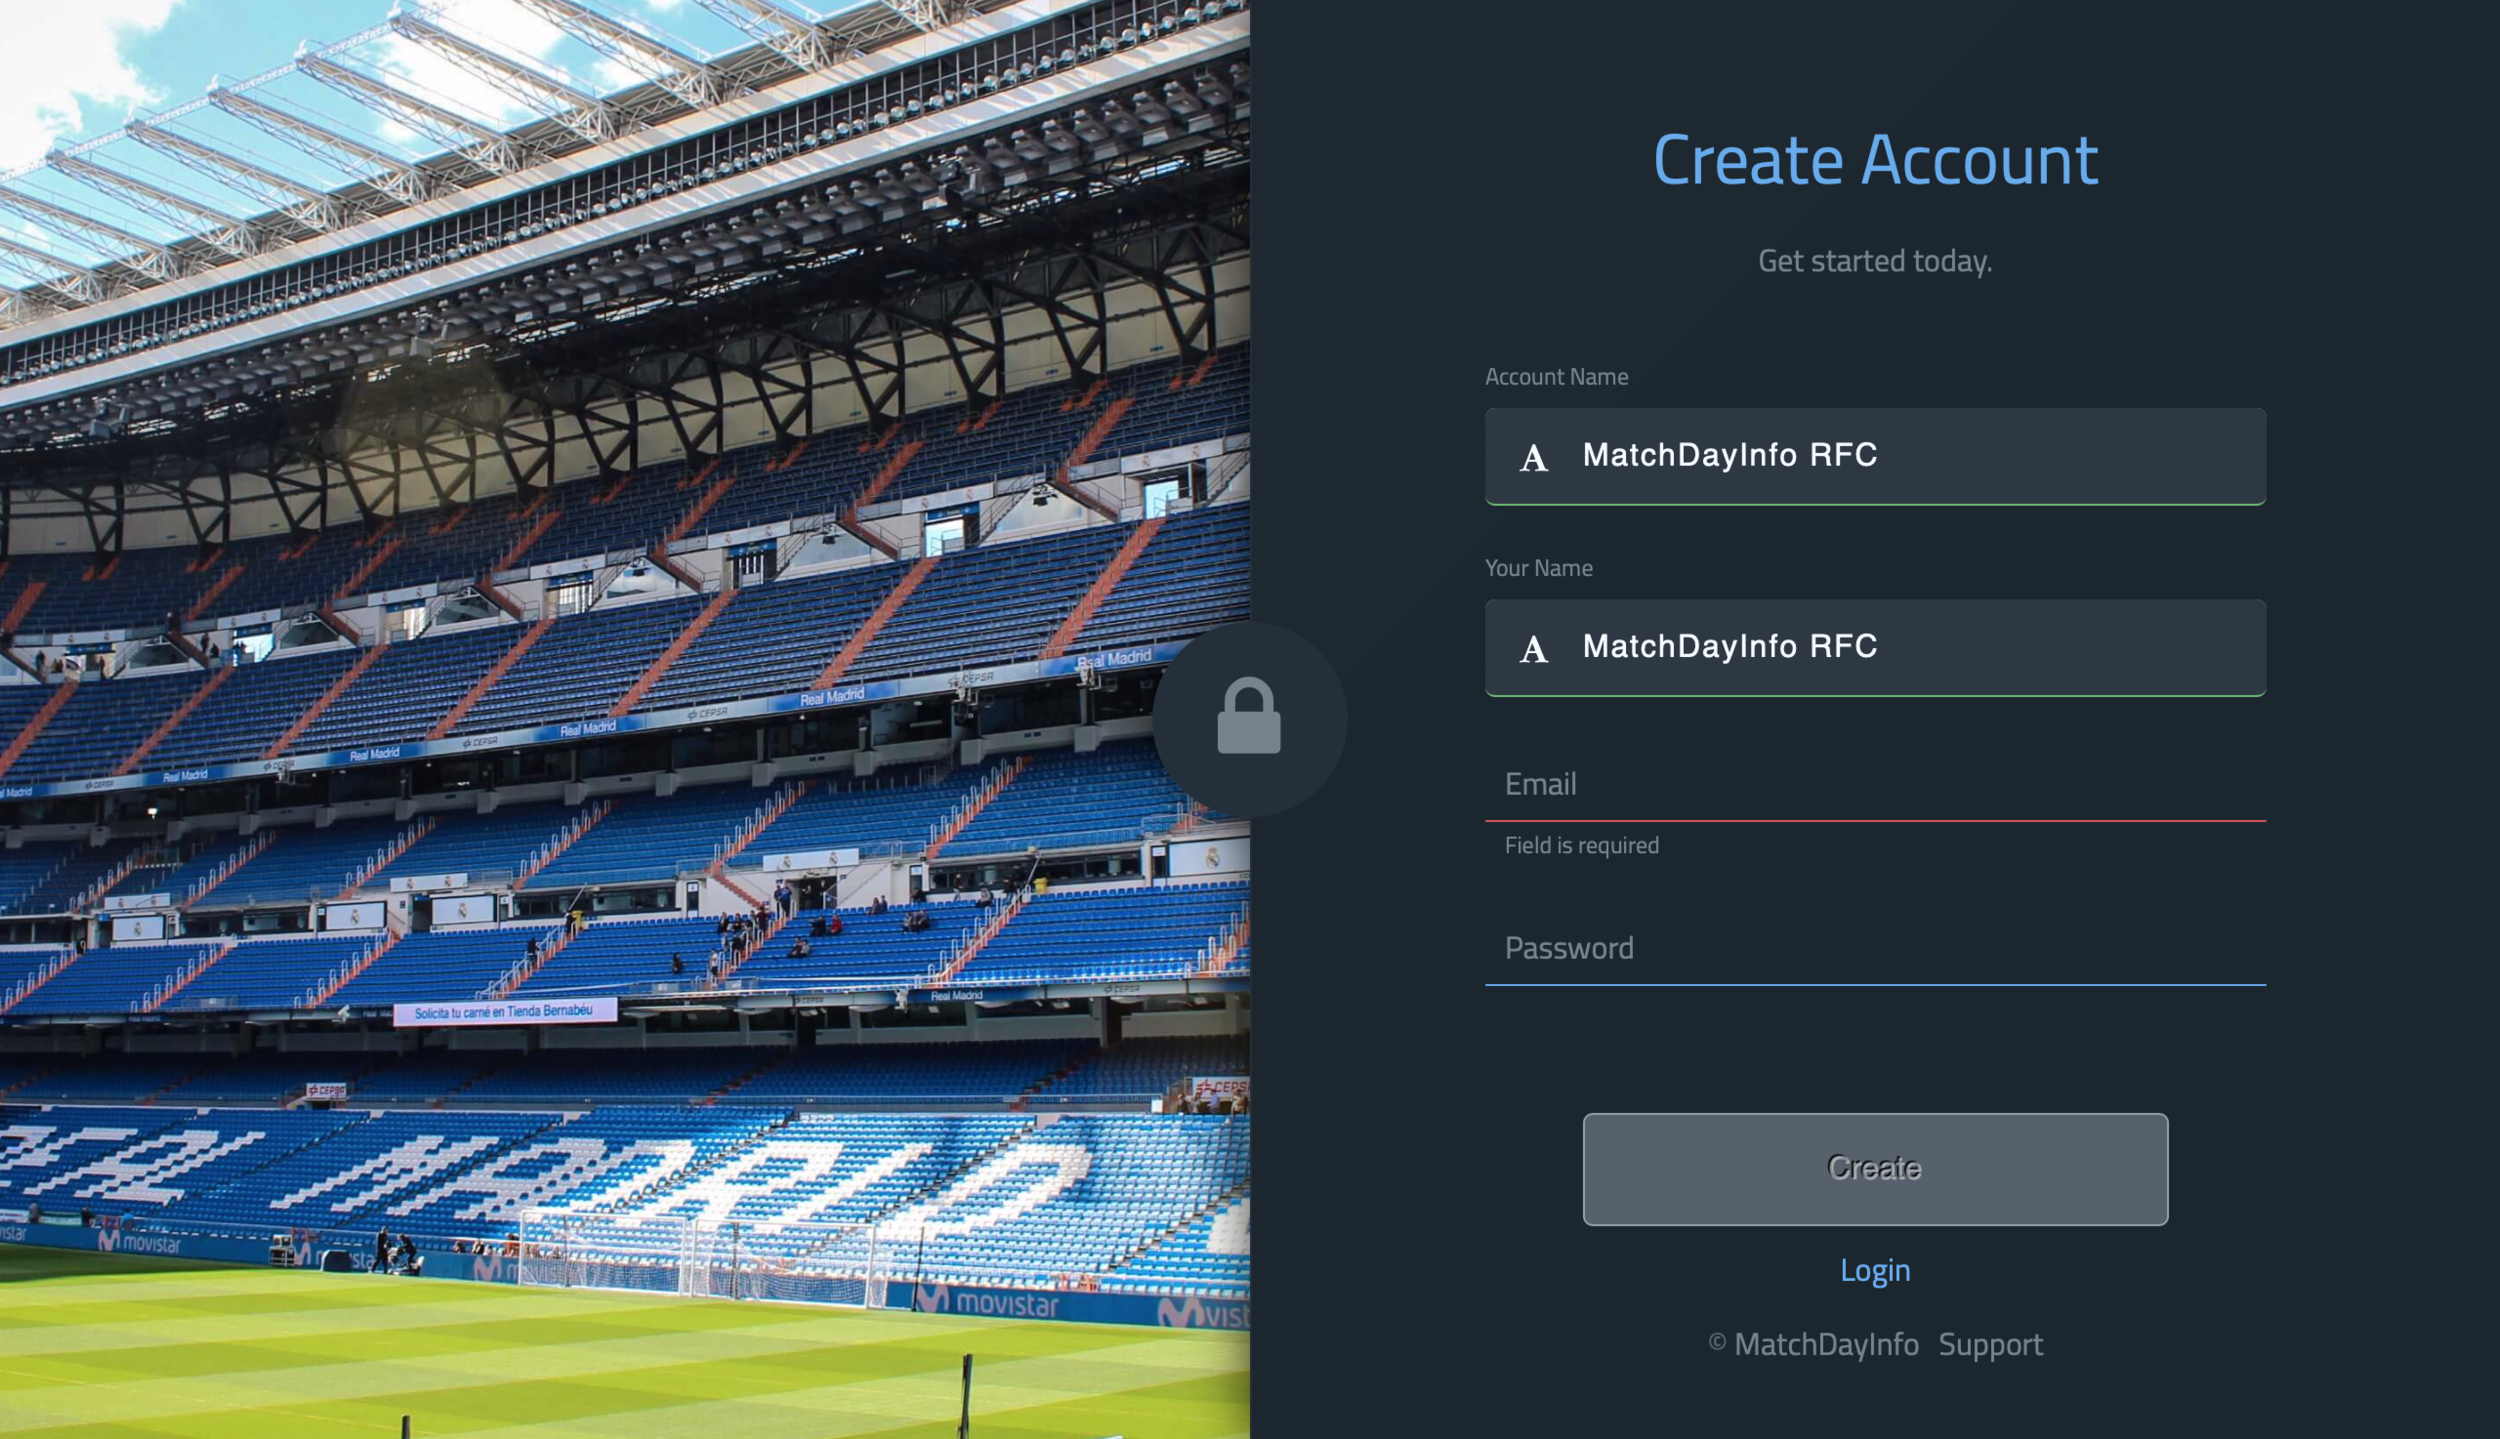 Step 2: Create Account - To create an account fill in the four empty boxes and click on the 'Create' button. We will need to verify your account from our end which usually takes a few moments. If you don't receive a verification email please get in touch (info@matchdayinfo.com).